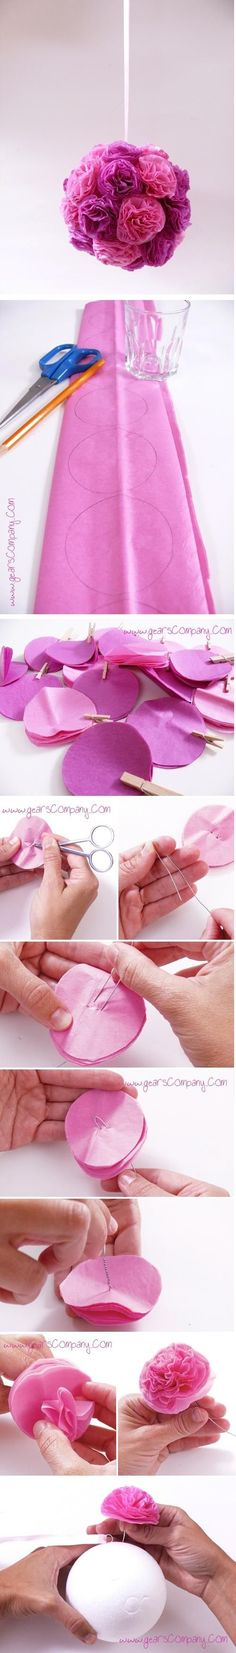 Easy to make hanging flower ball!